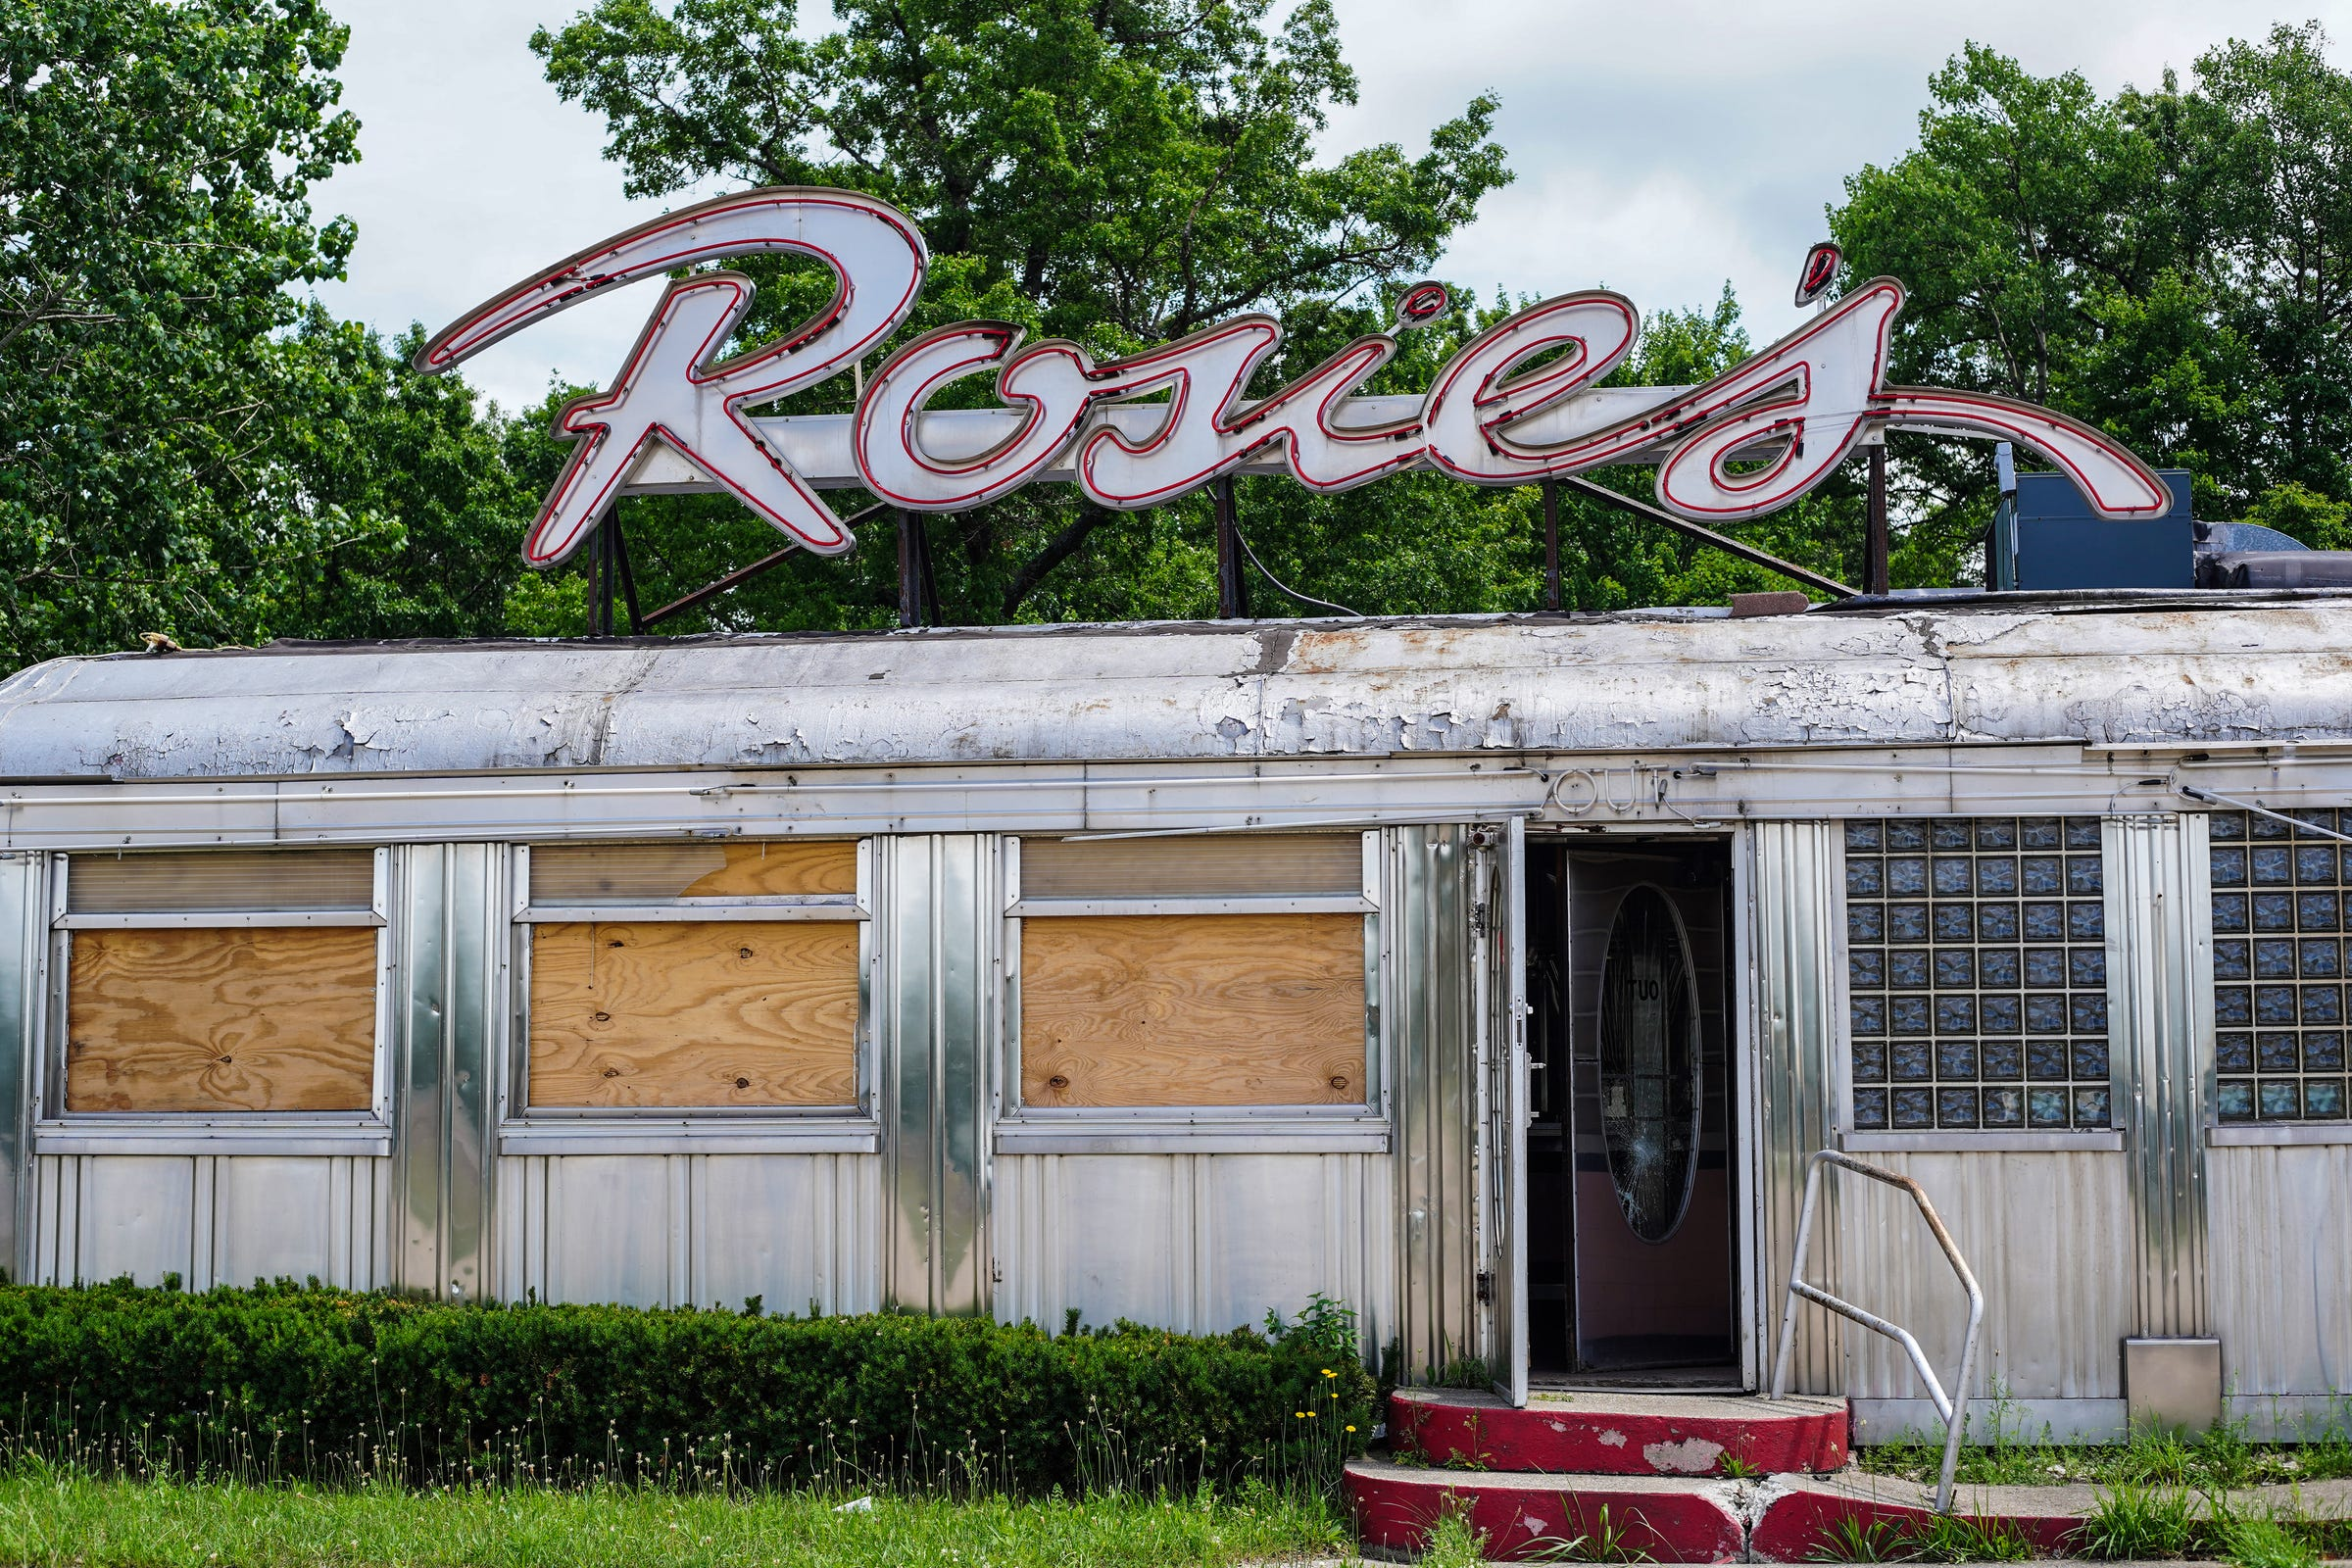 West Michigan's famous Rosie's Diner is ready for its next life